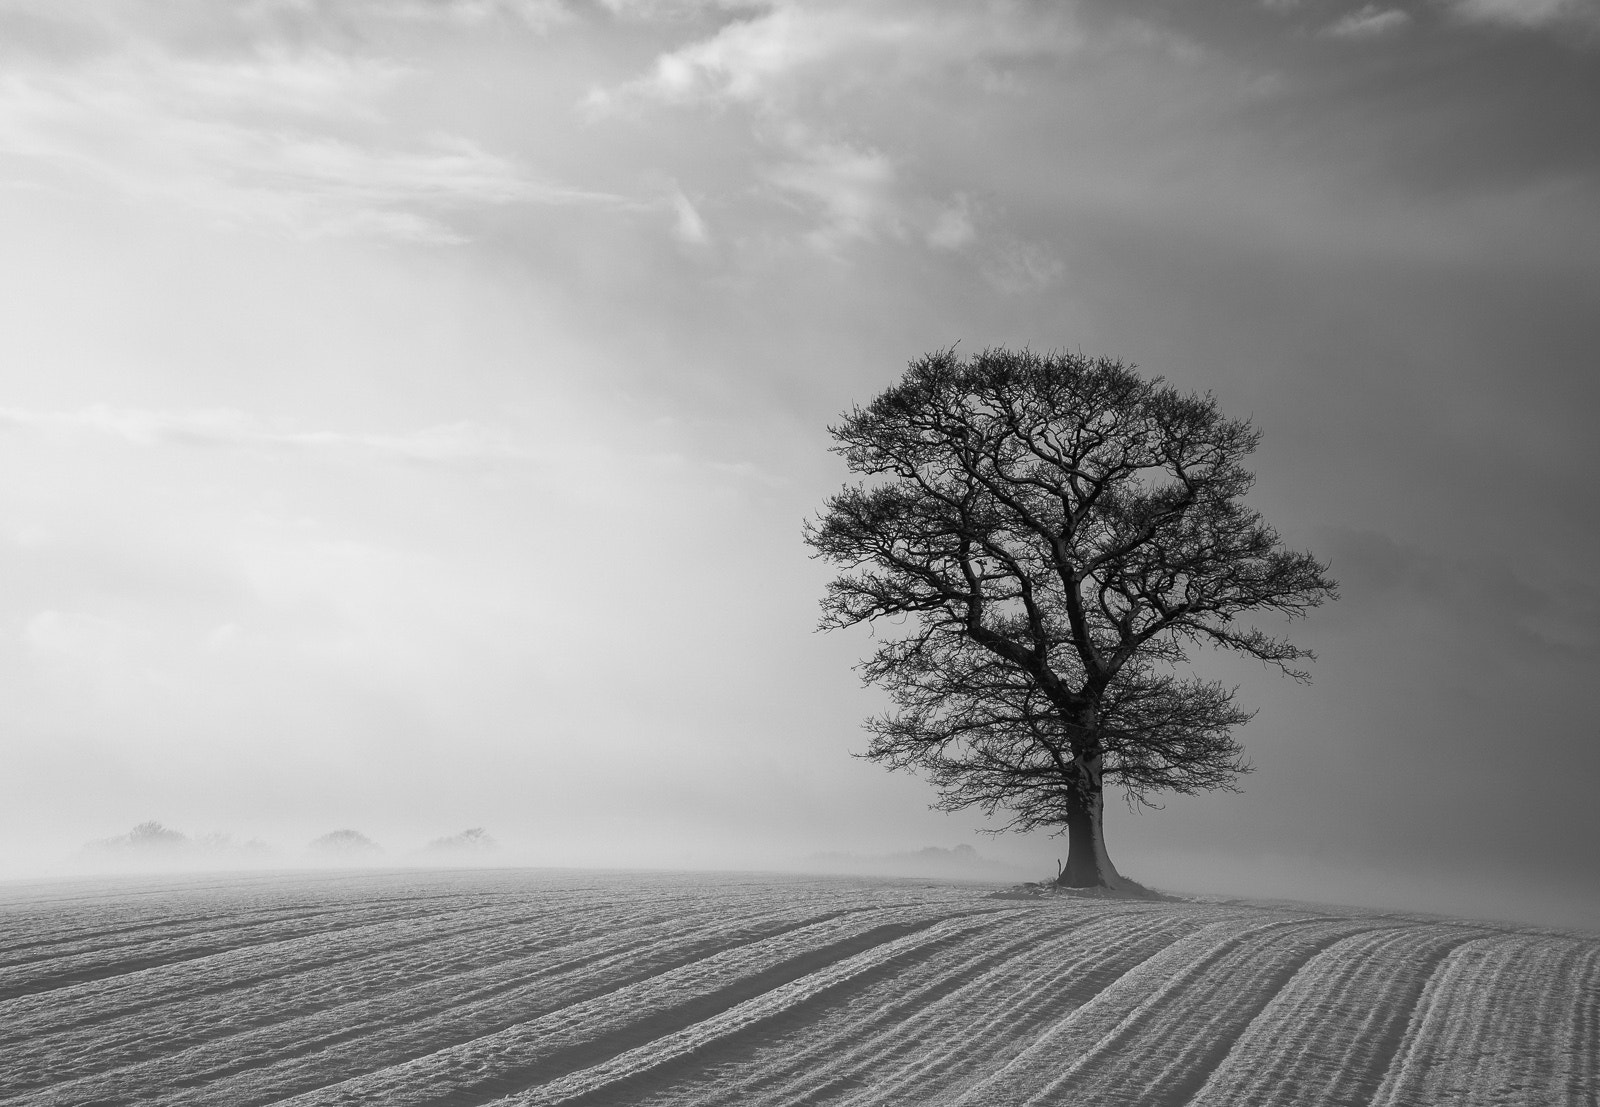 Photograph Hanworth Tree by Rick Bowden on 500px